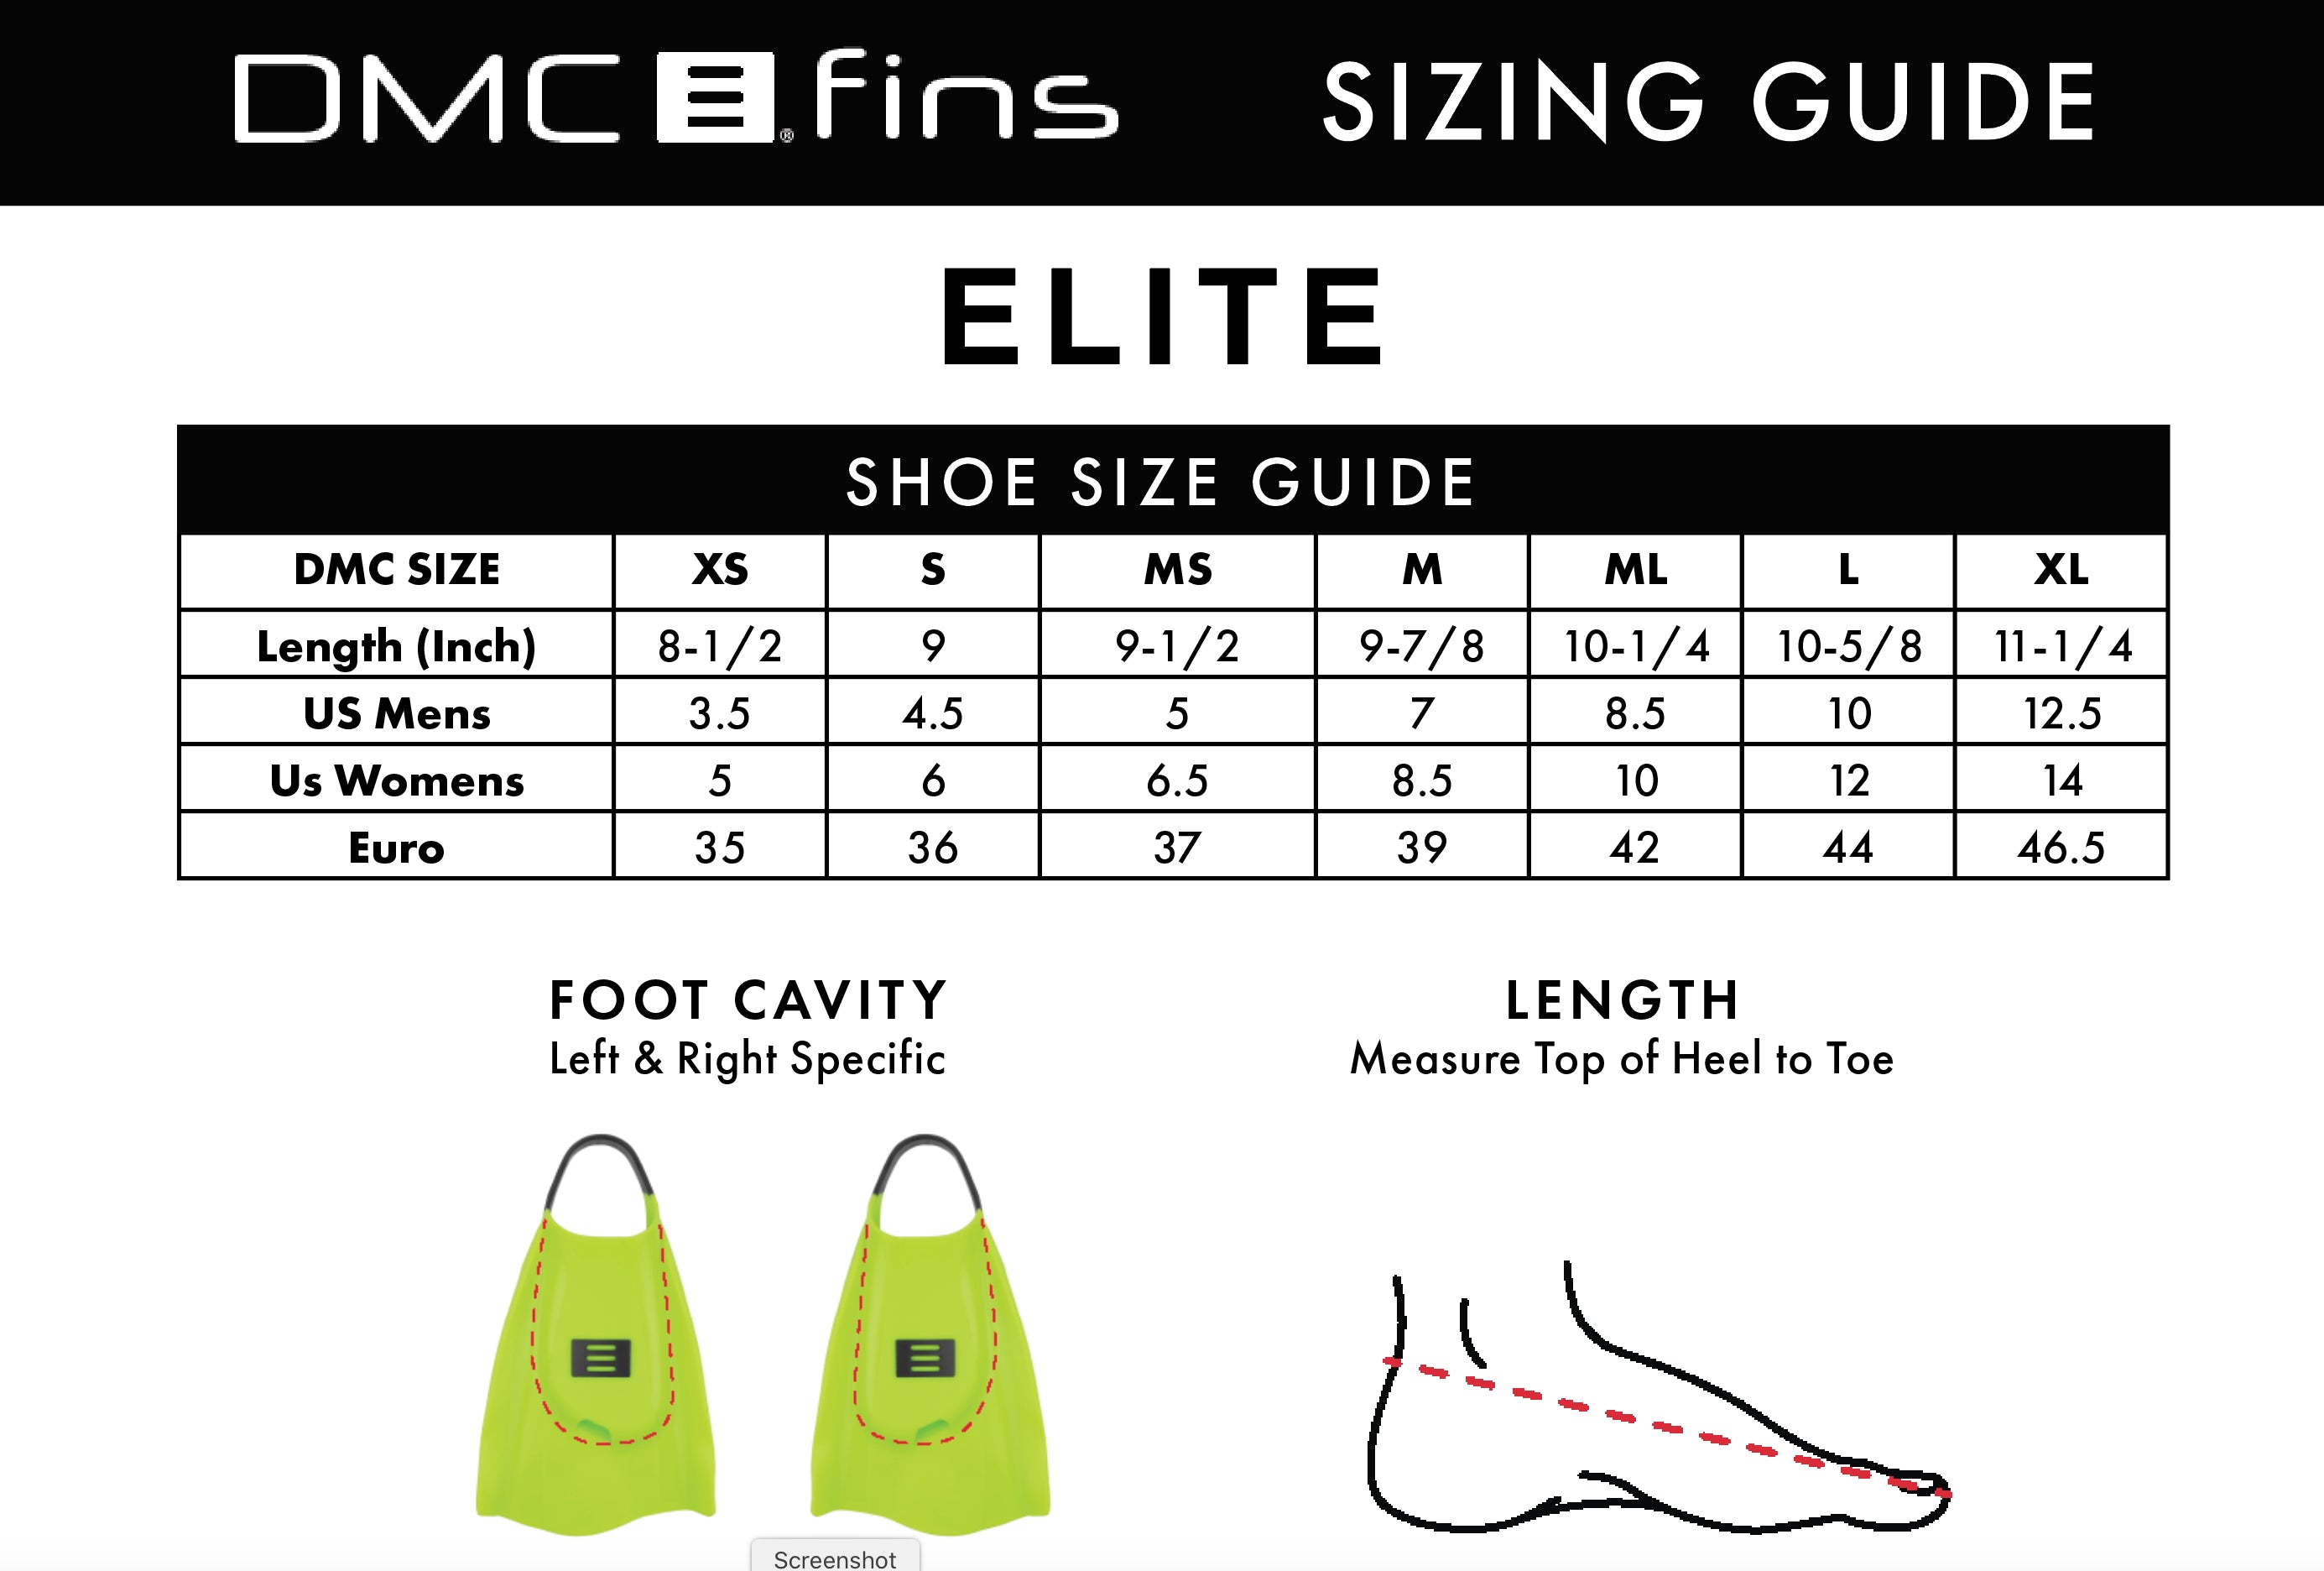 DMC Fins Elite UV size guide